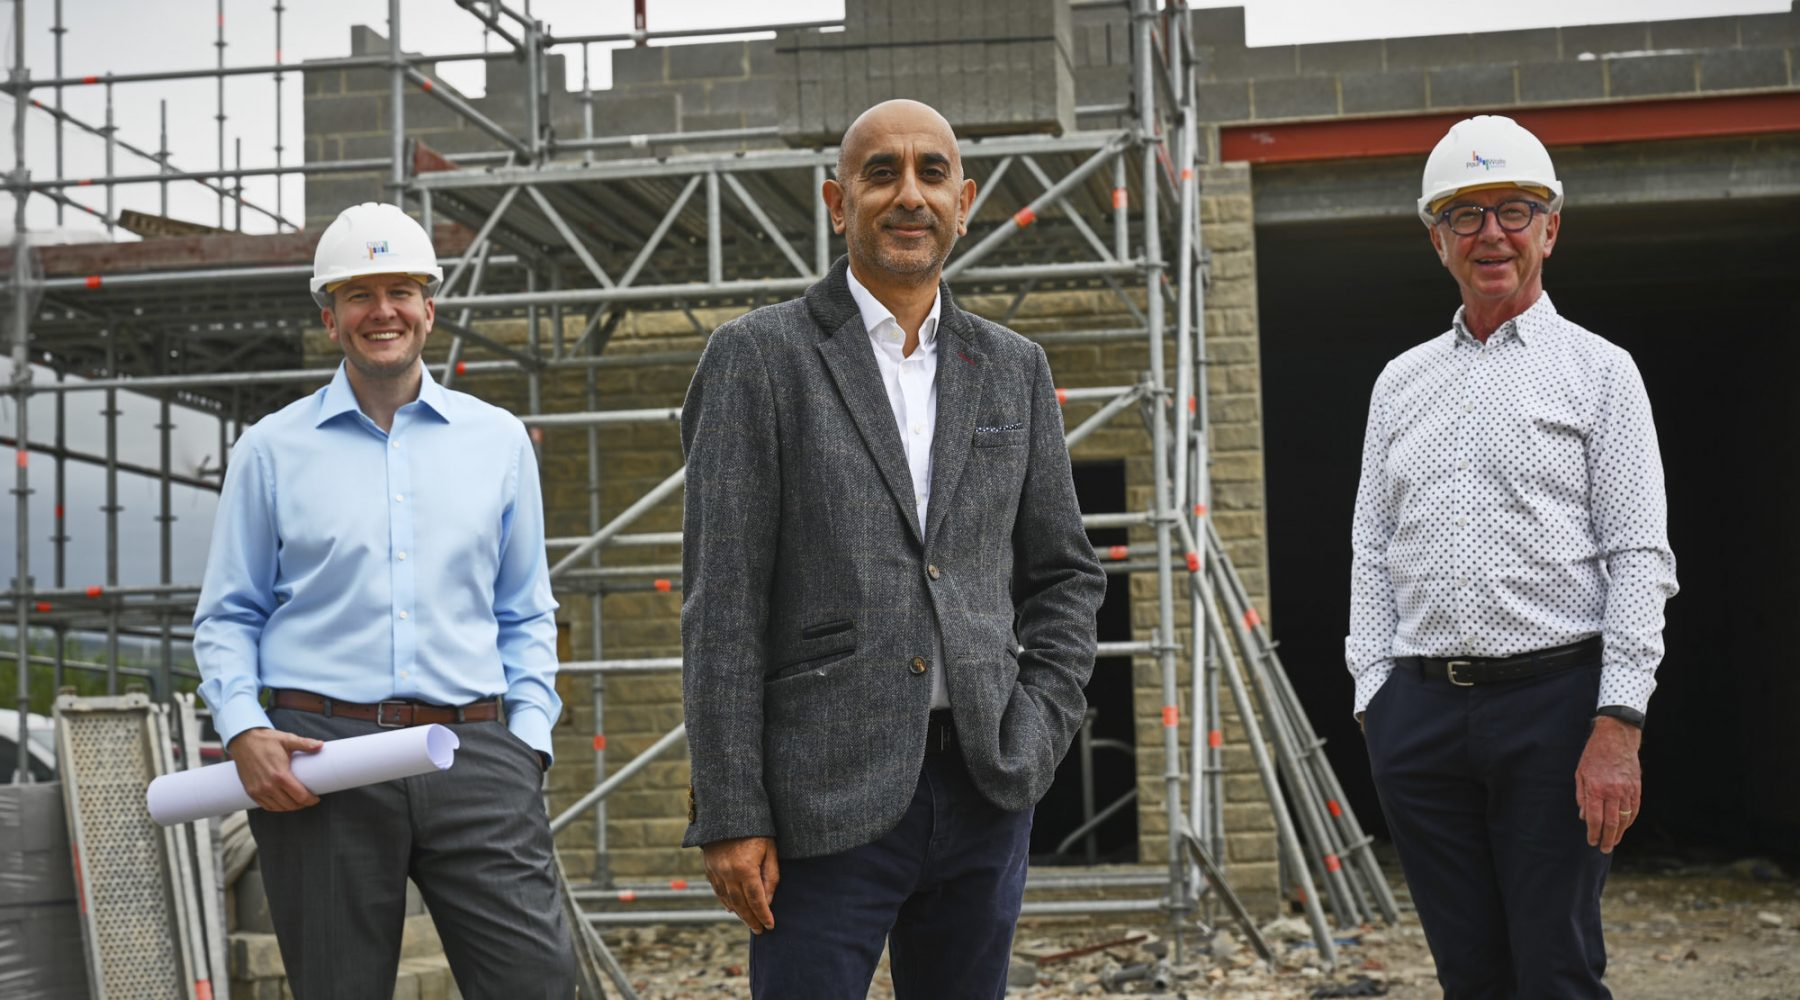 Buy out deal secured for Keighley engineering firm